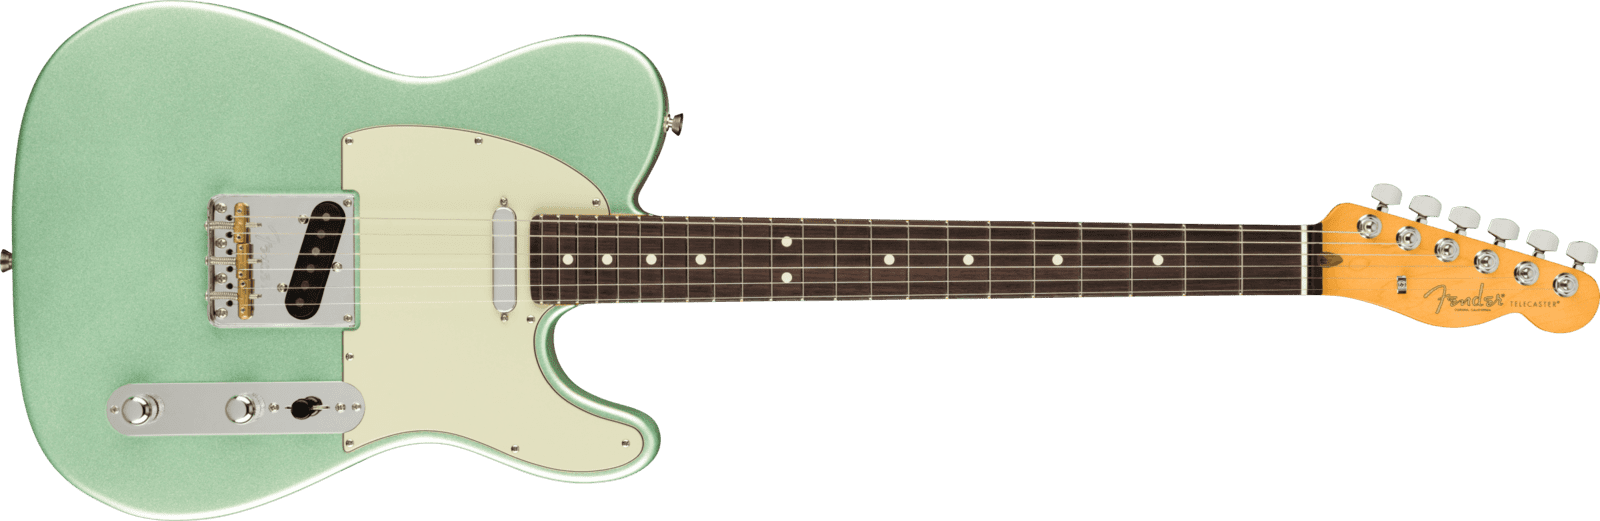 American Professional II Telecaster®, Rosewood Fingerboard, Mystic Surf Green